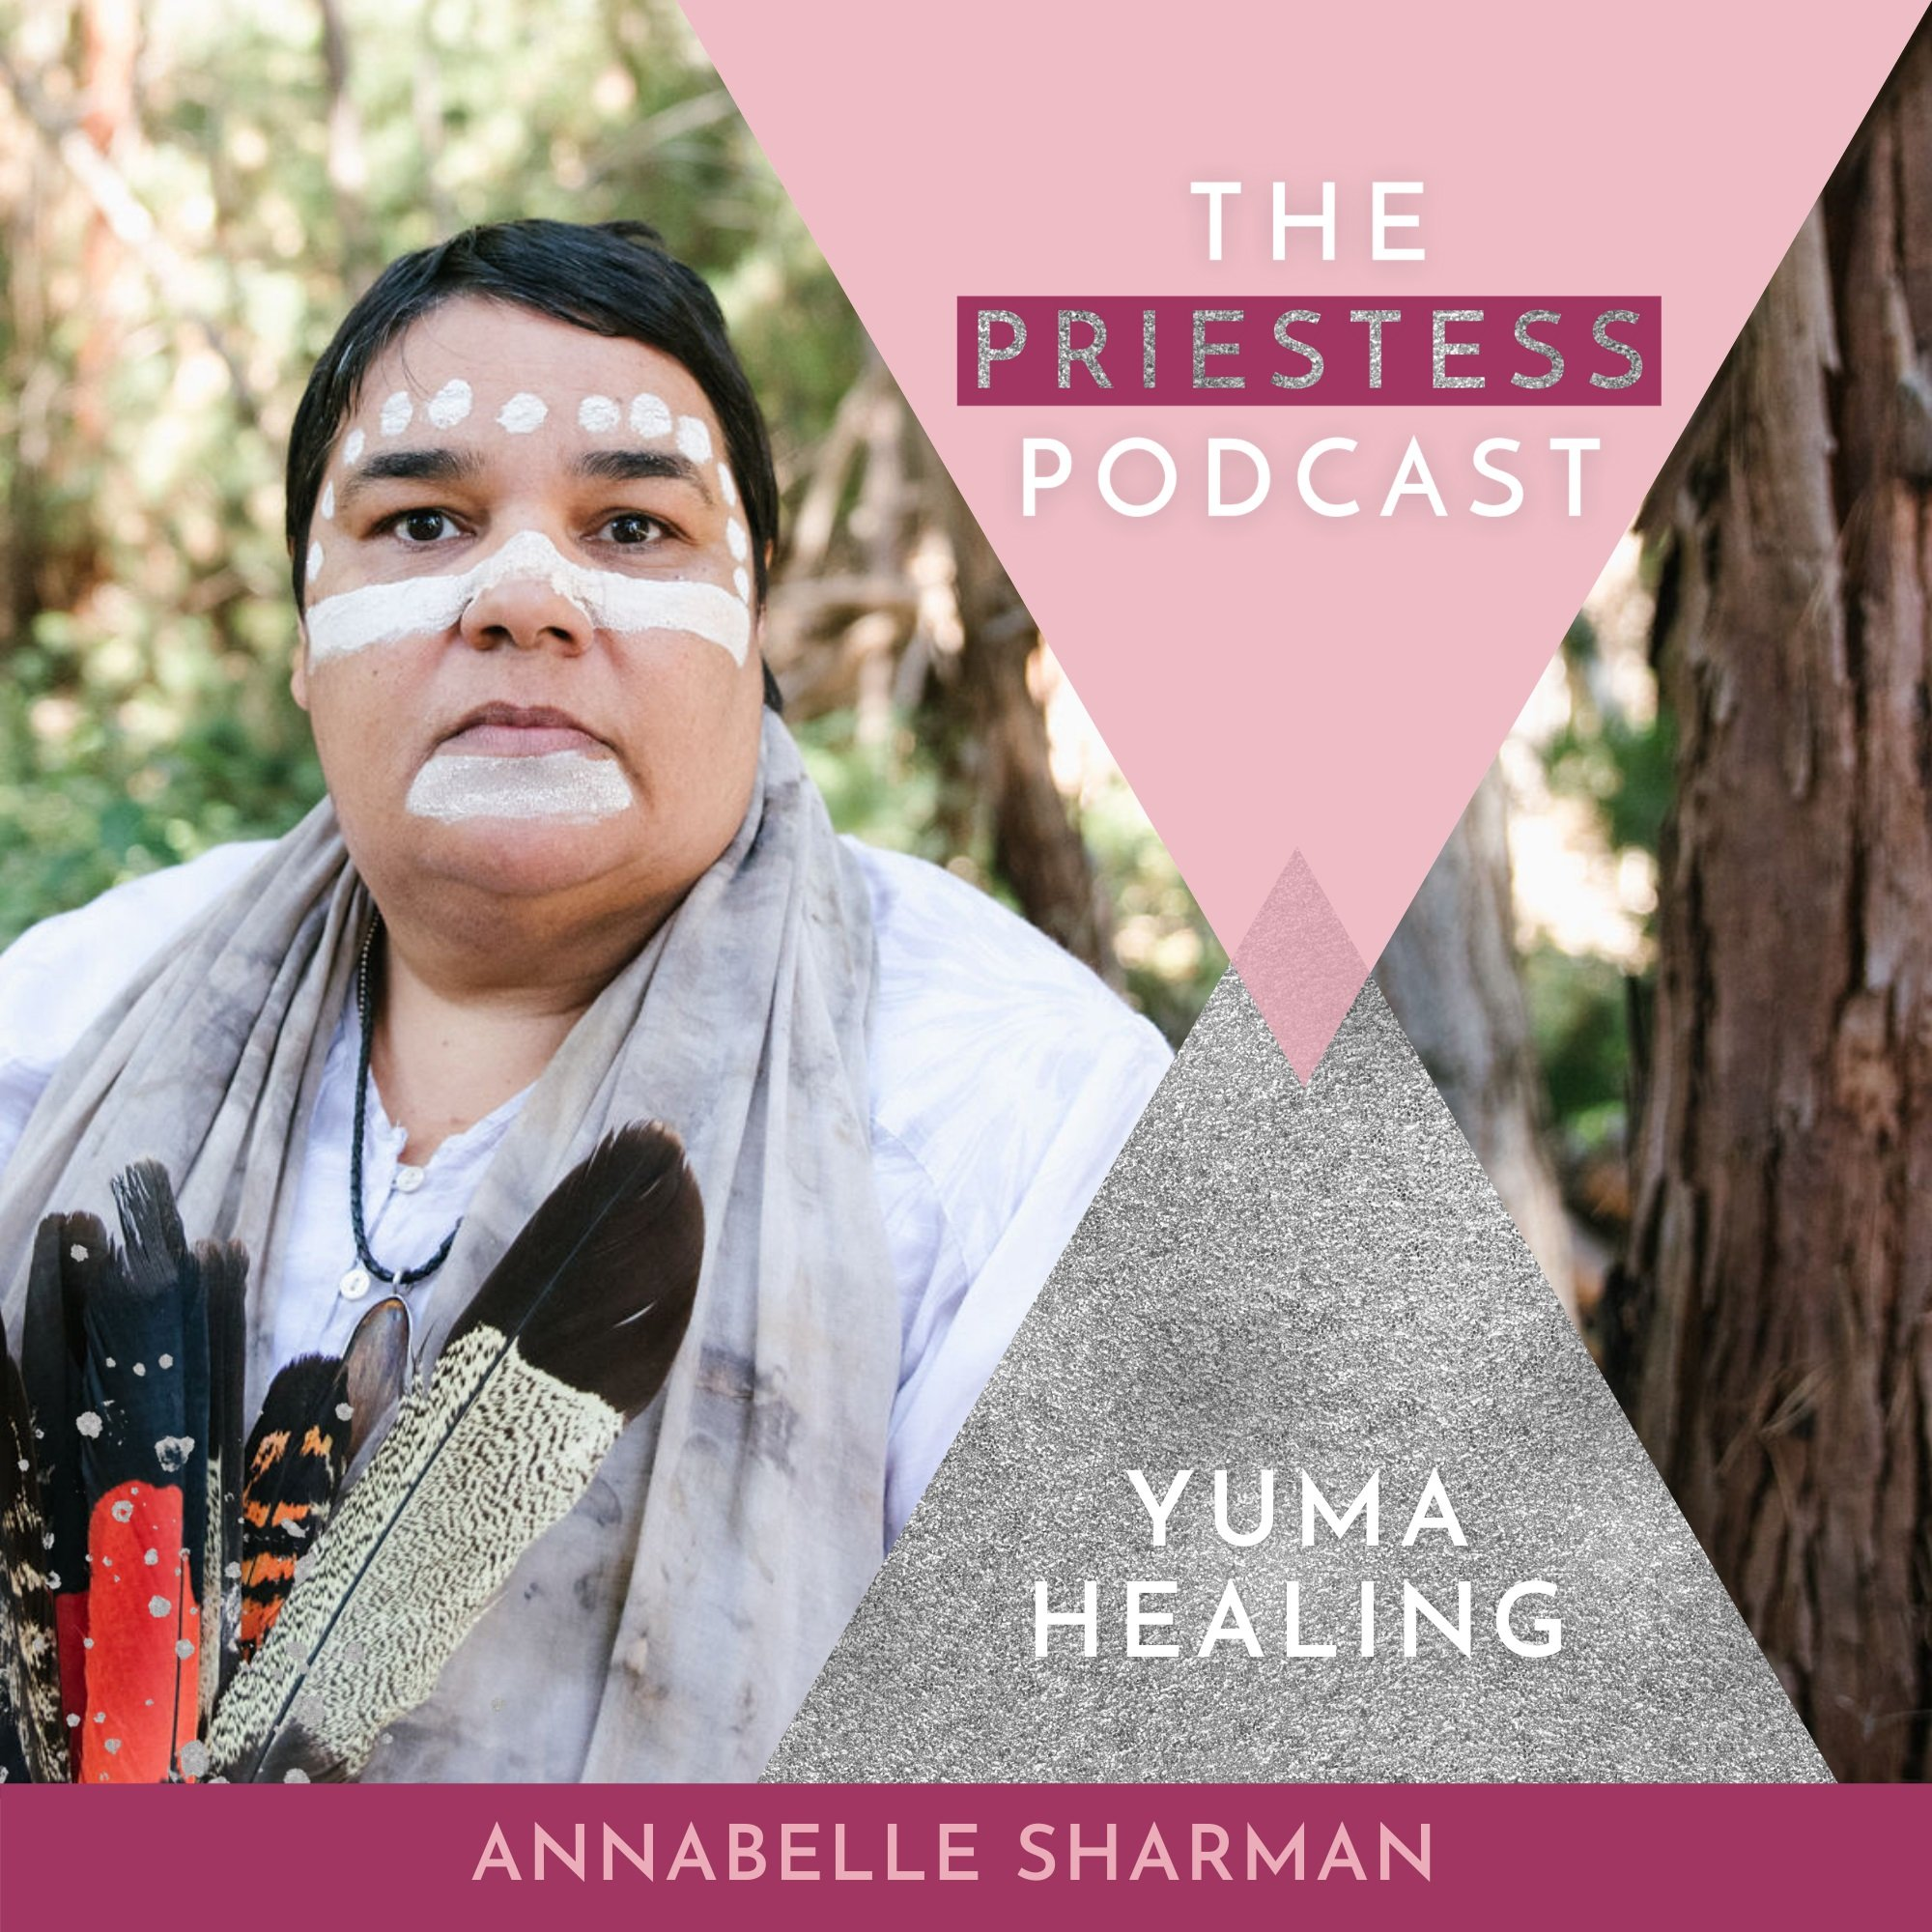 Annabelle Sharman on Yuma Healing